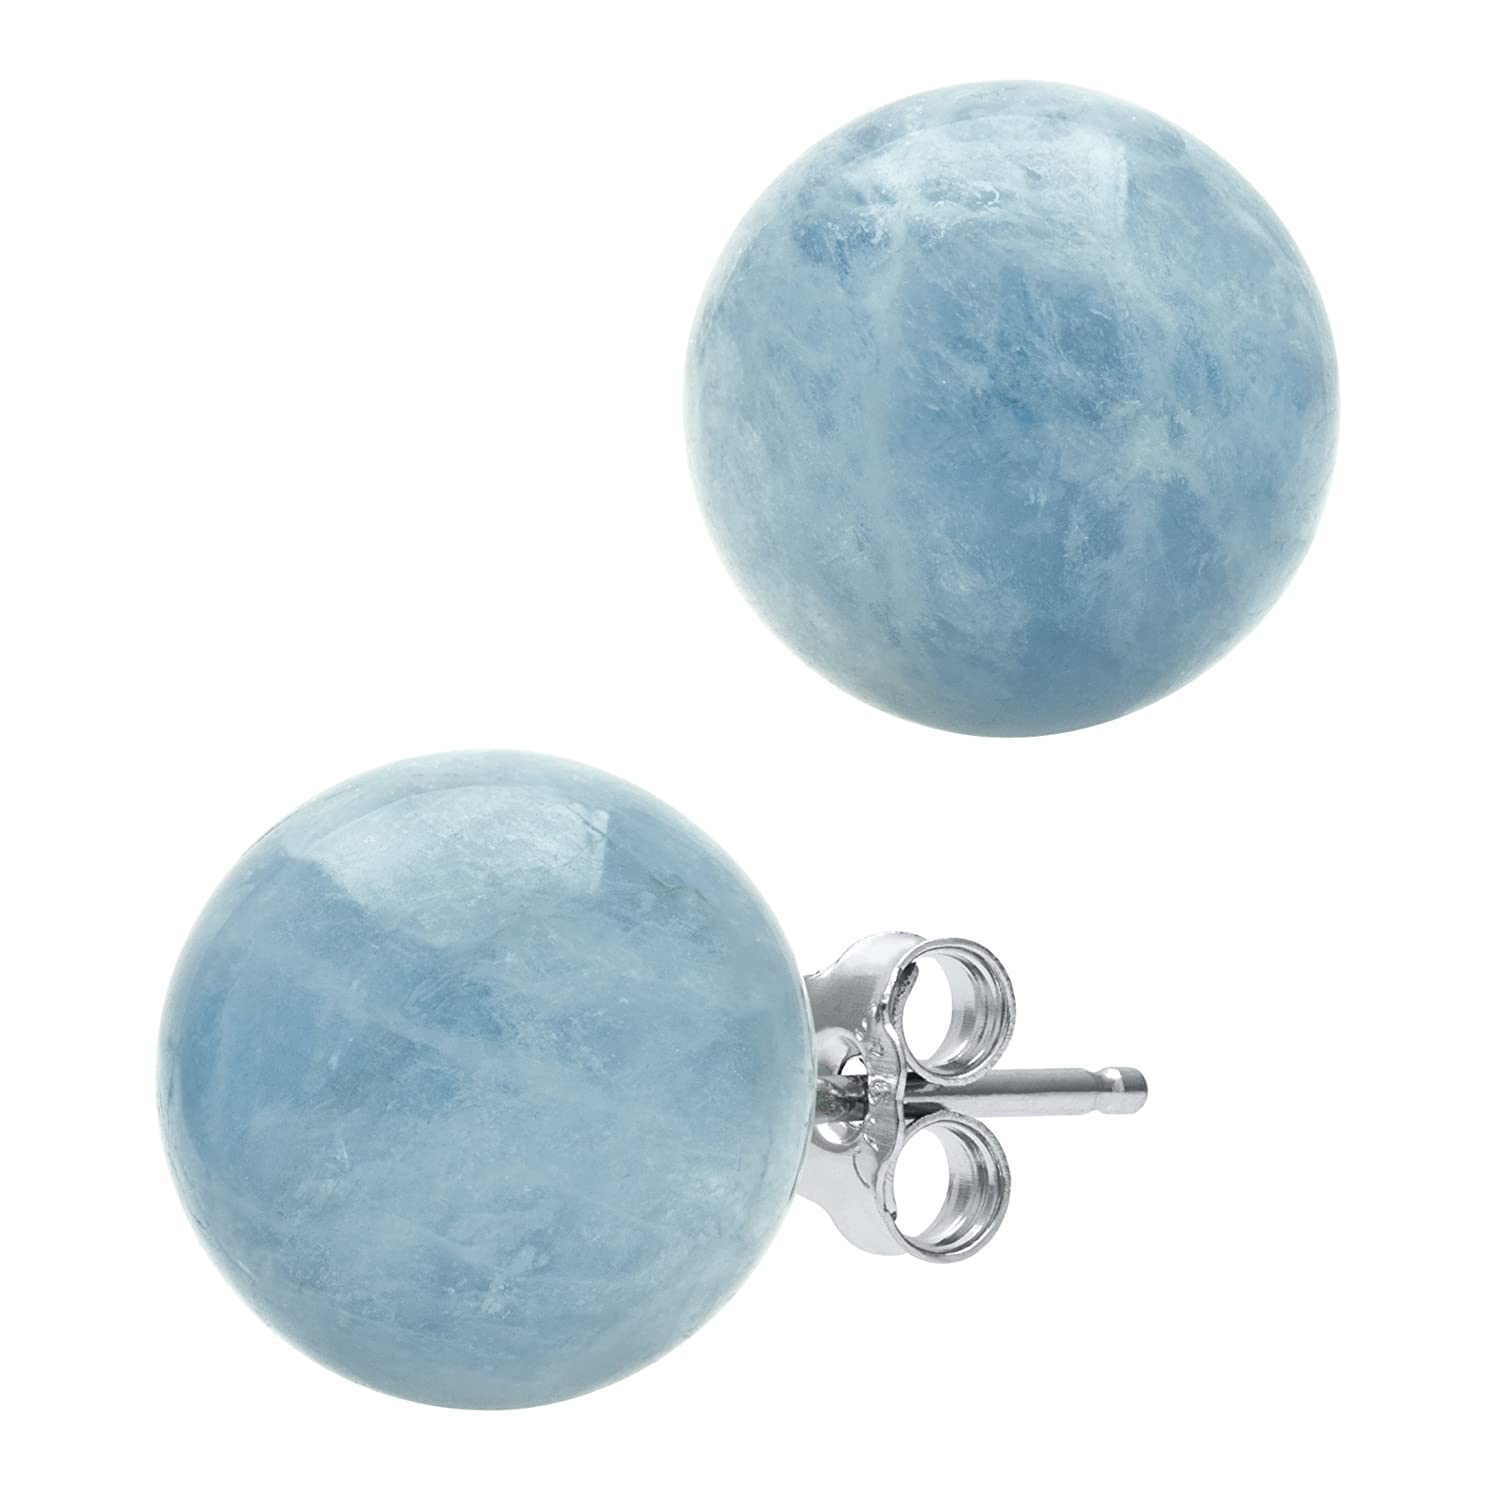 genuine earrings pin gold gift ideas aquamarine white